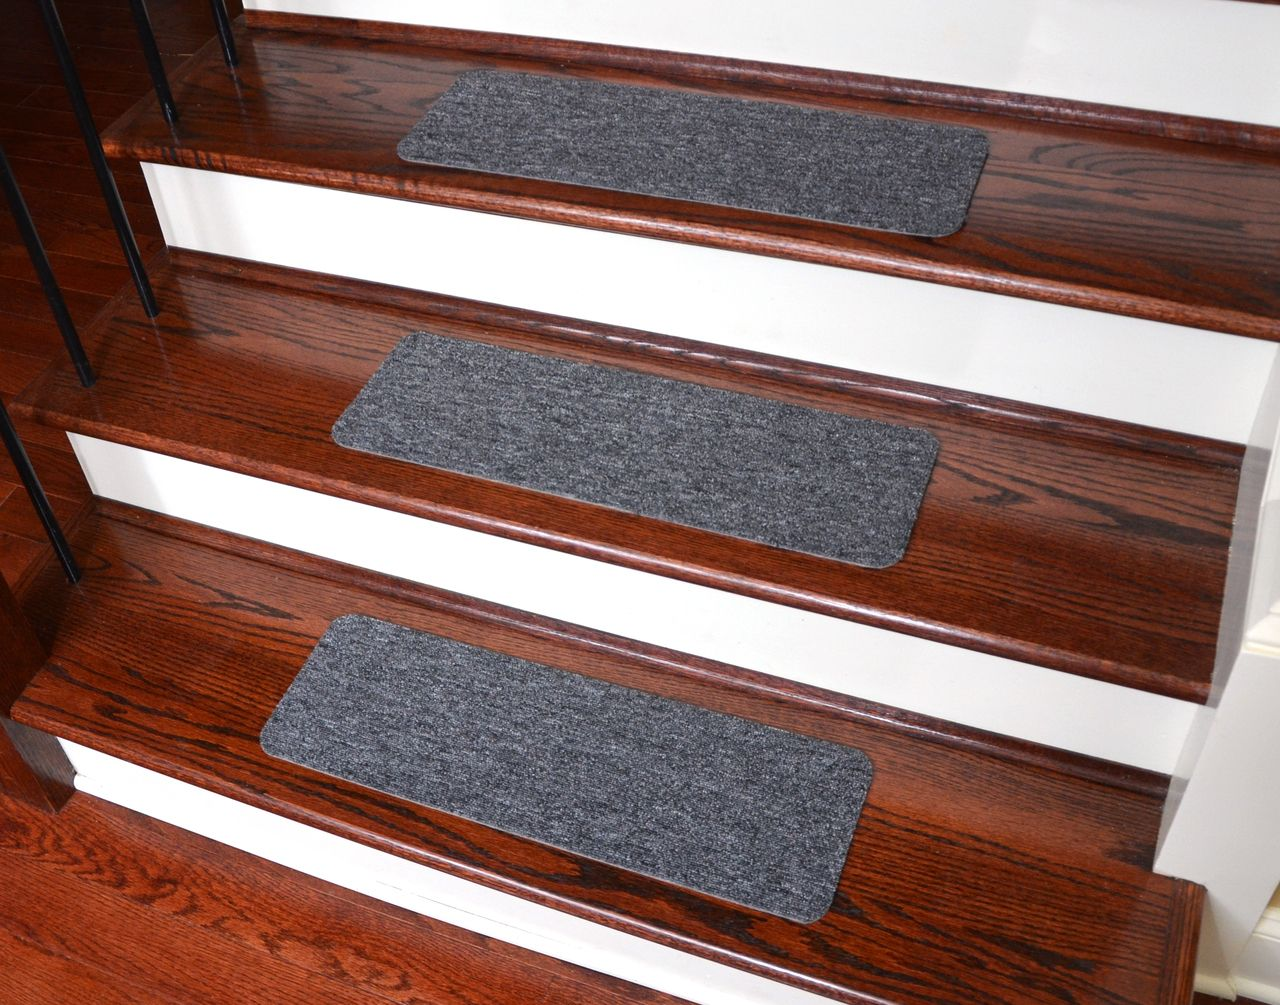 Best Dean Affordable Non Skid Diy Peel Stick Carpet Stair 400 x 300